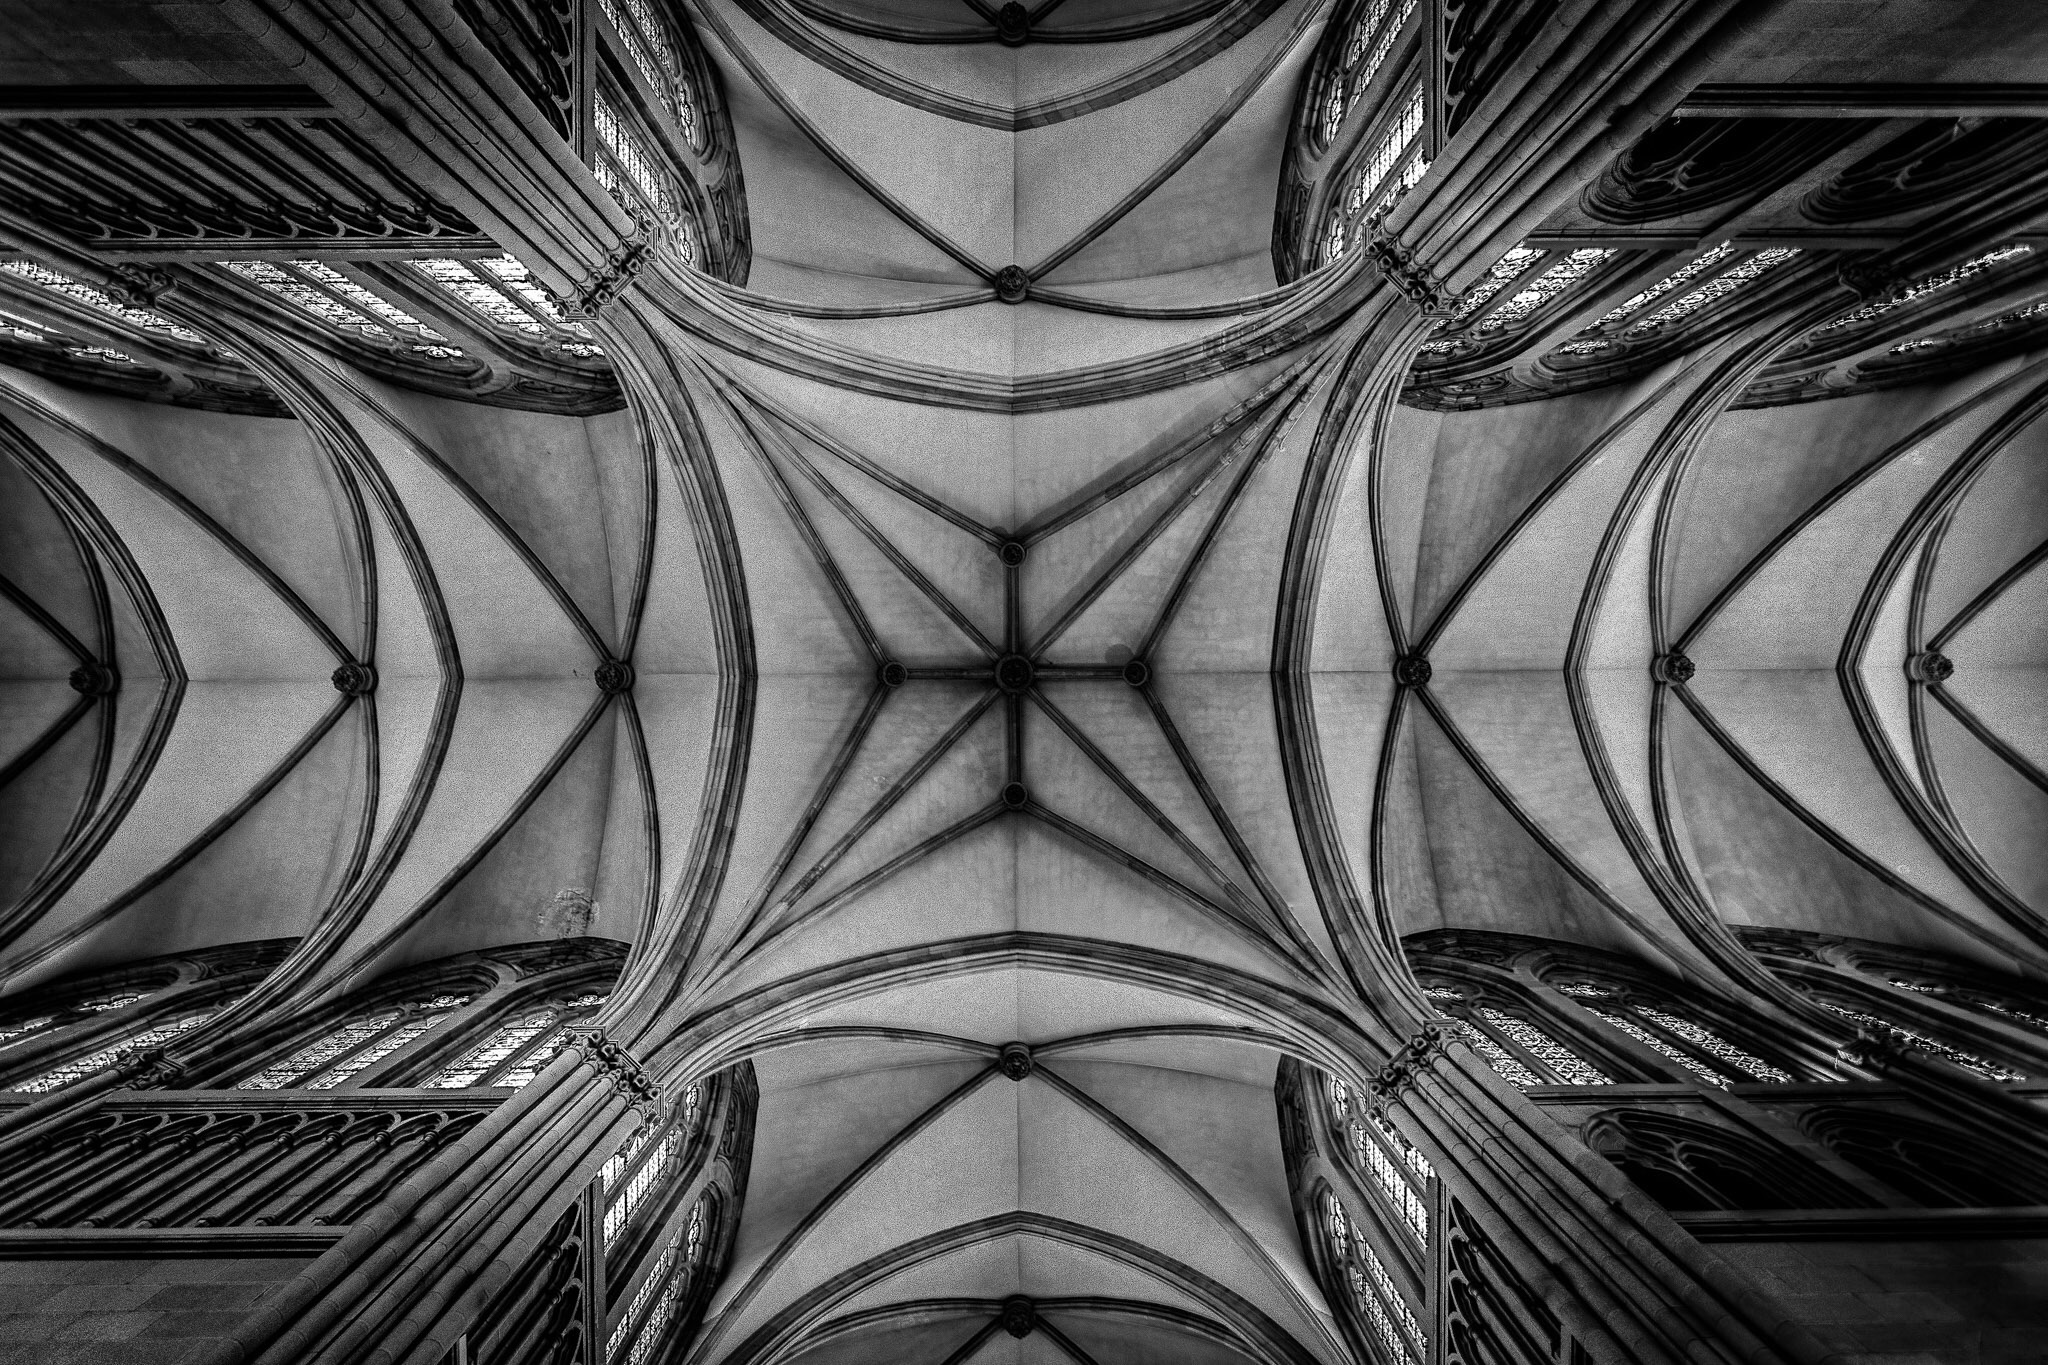 San Sebastian Cathedral in Spain - an immense structure with a stunning roof